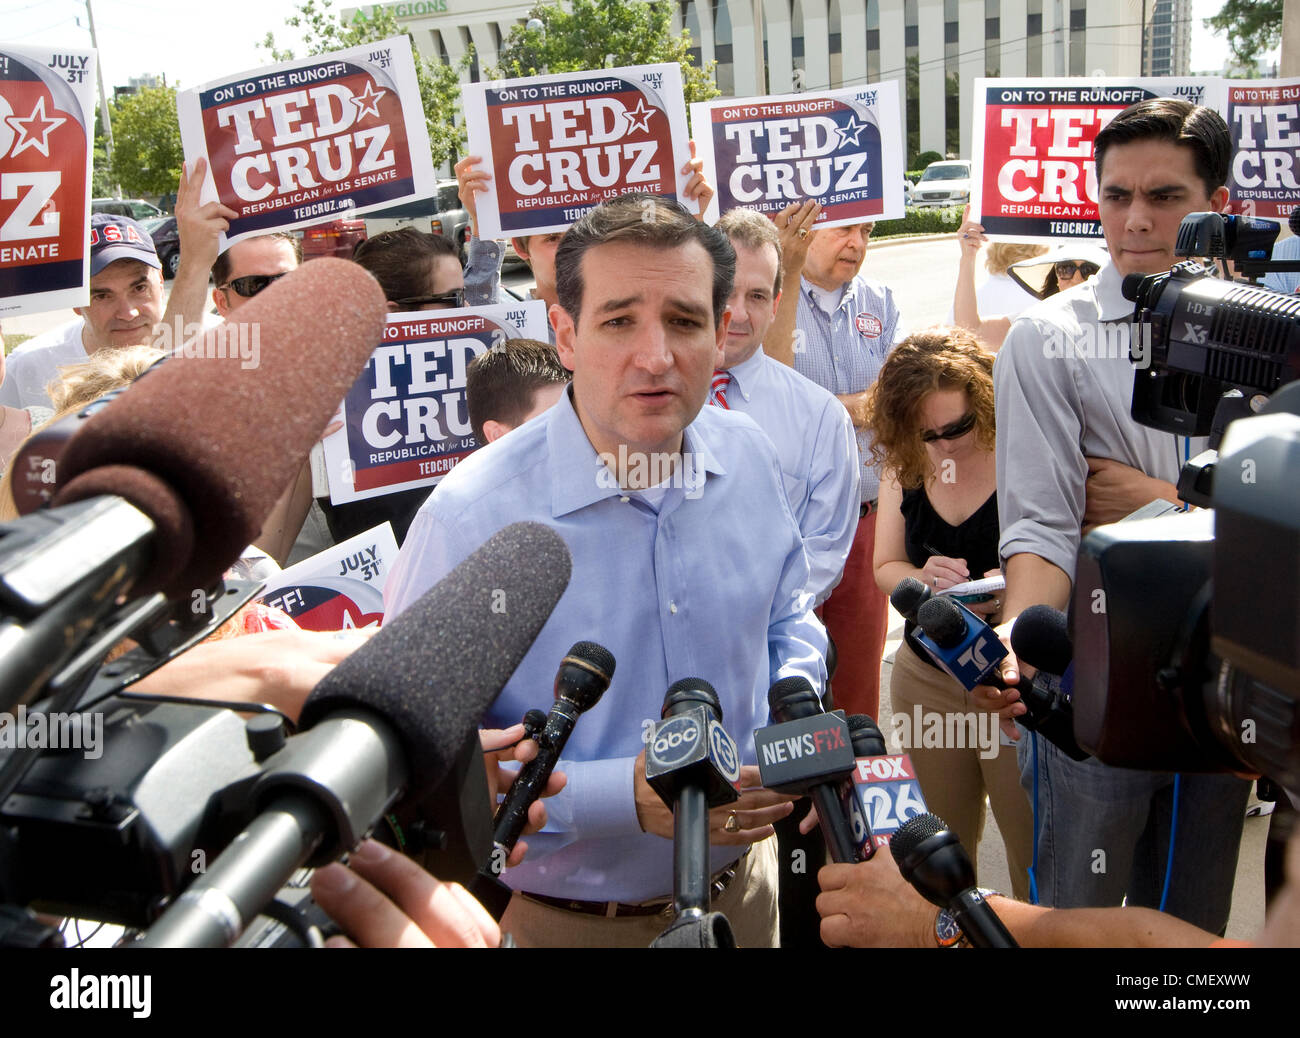 Tea Party US Senate candidate Ted Cruz greets supporters and the press outside a polling place in Houston July 31, - Stock Image